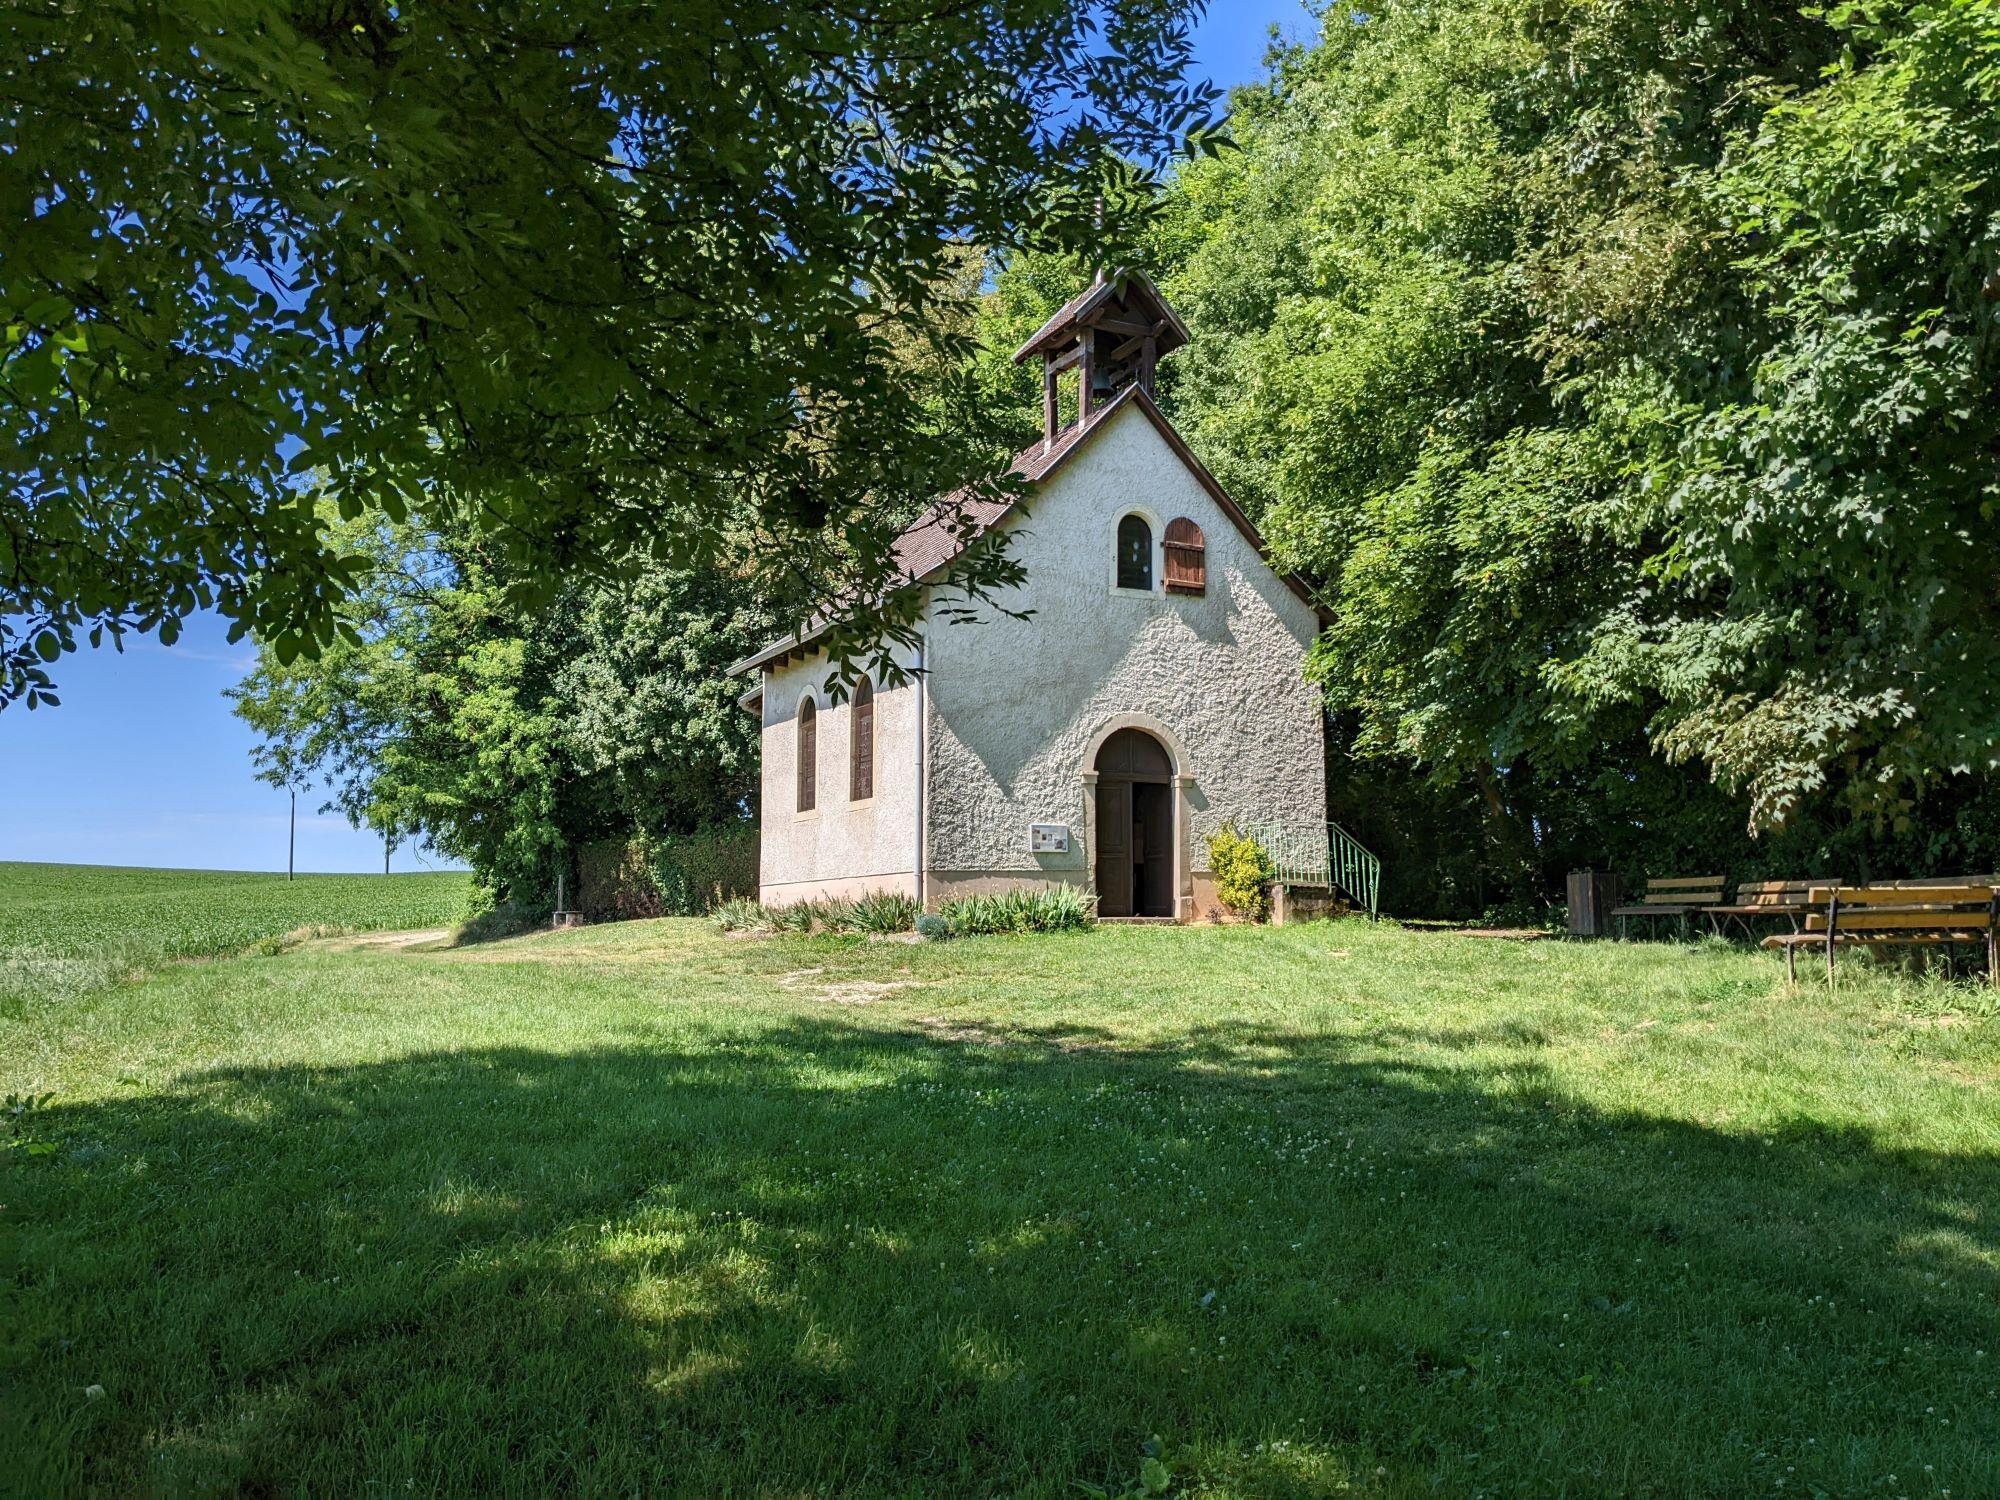 Littenkapelle